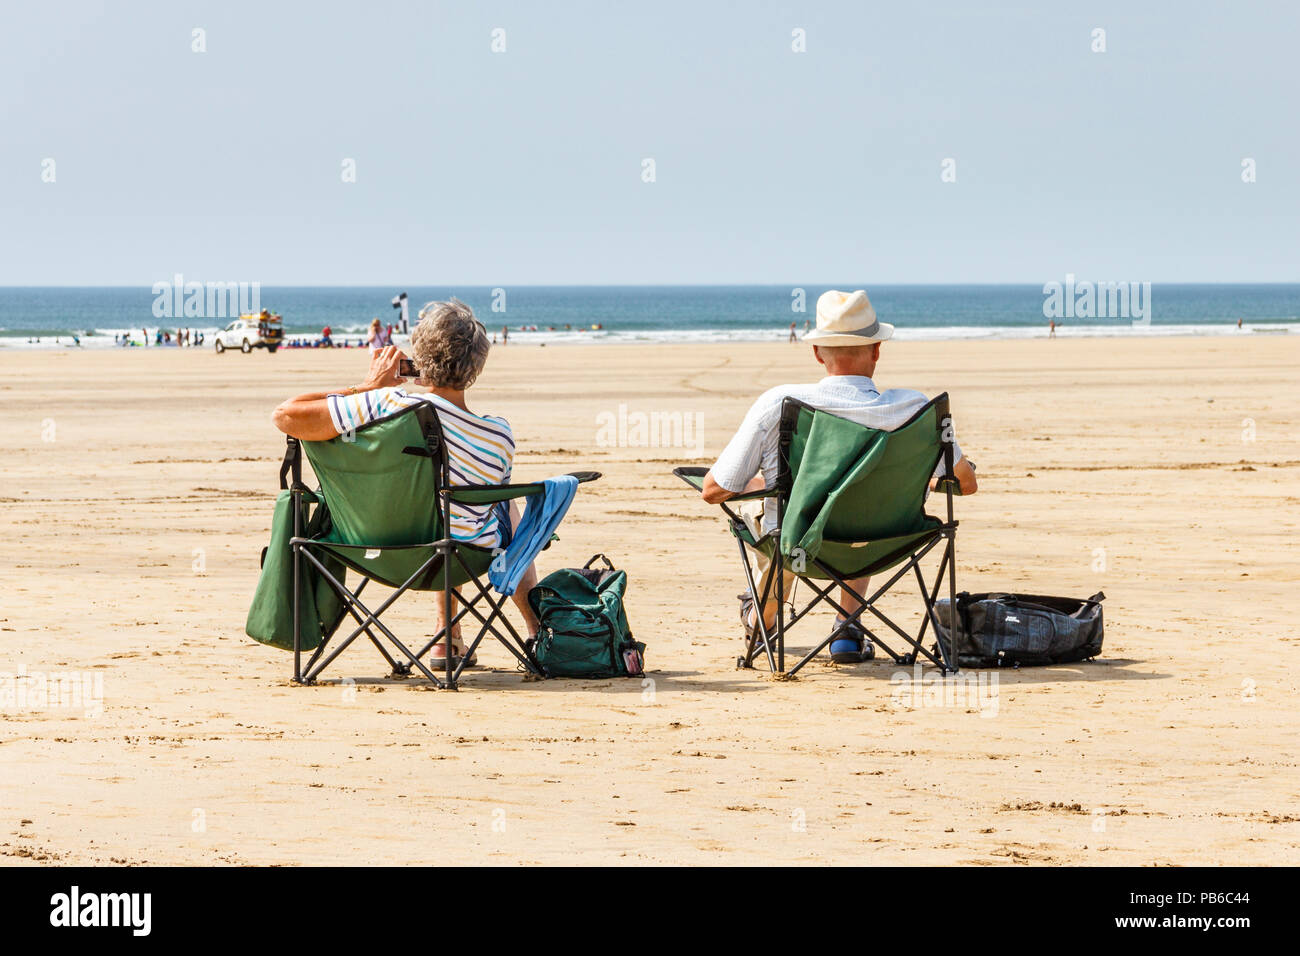 Two older holidaymakers (man and woman) in beach chairs seeking sun and sea as the summer heatwave continues, Westward Ho!, Devon, UK - Stock Image